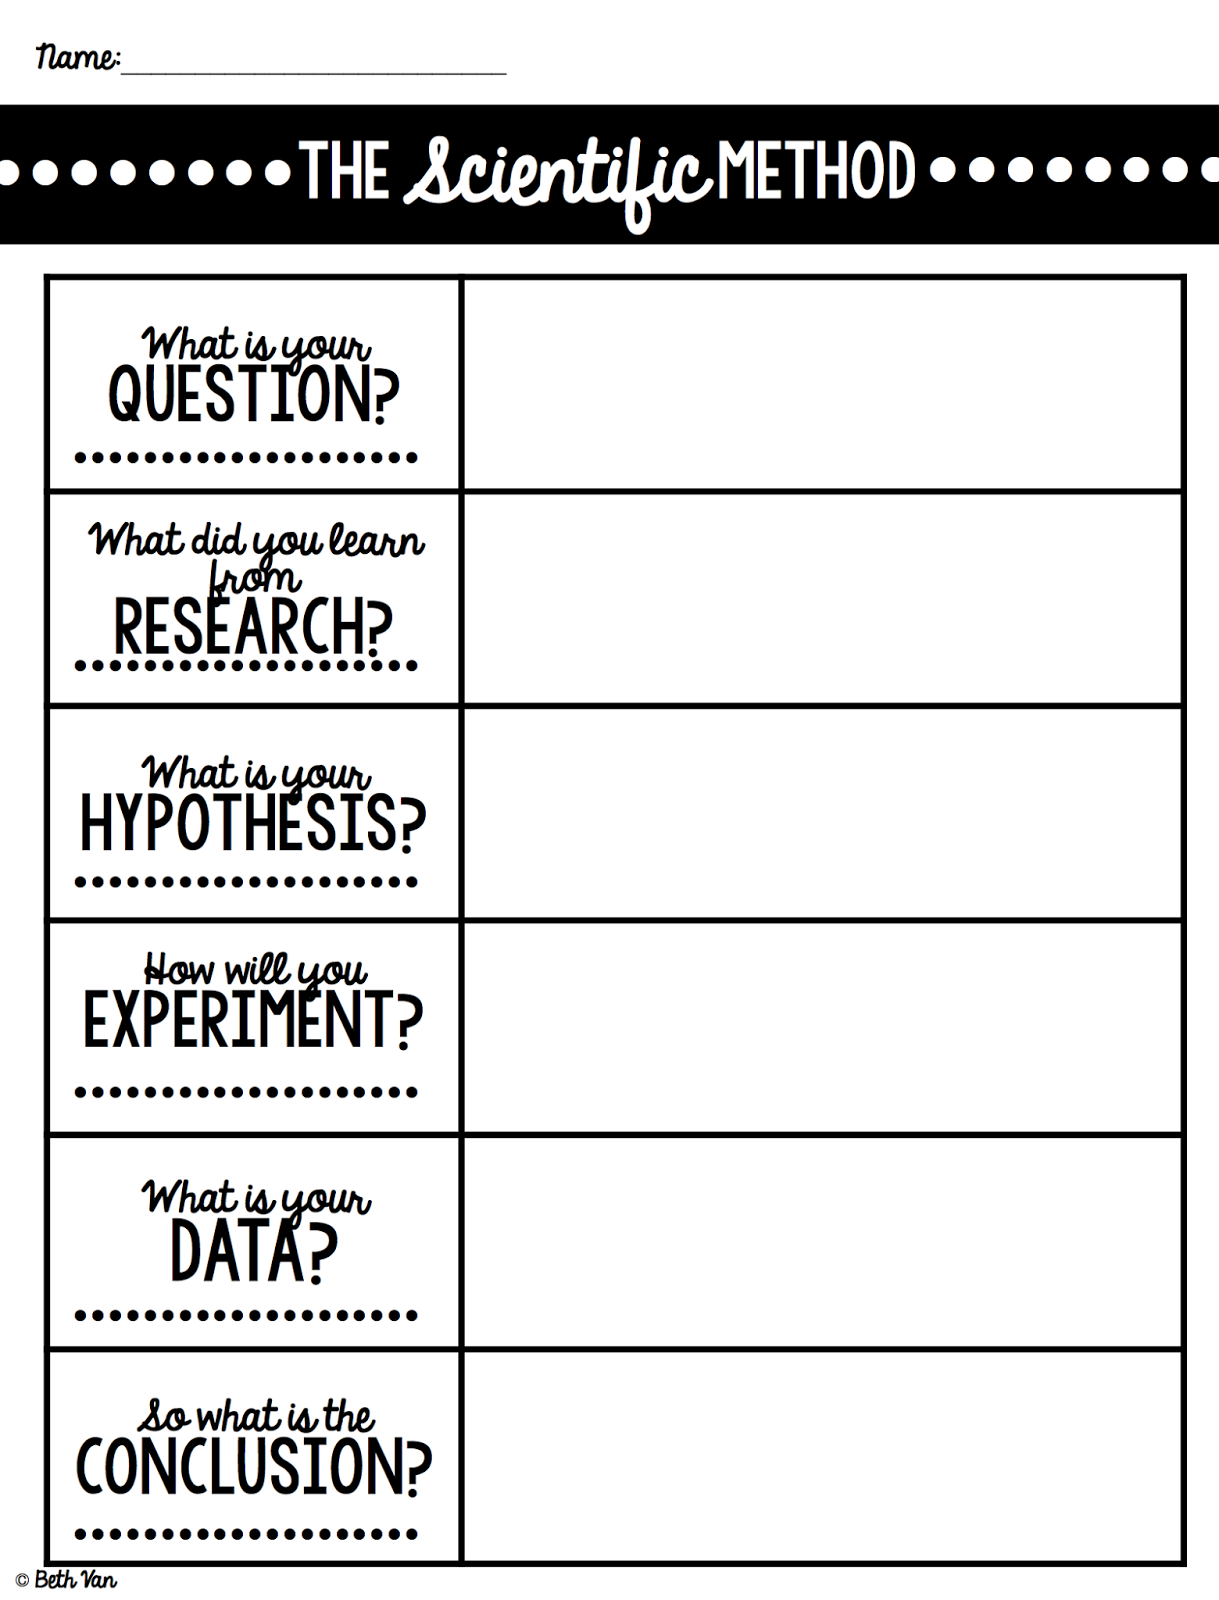 Can You Walk On Water Scientific Method Awesomeness